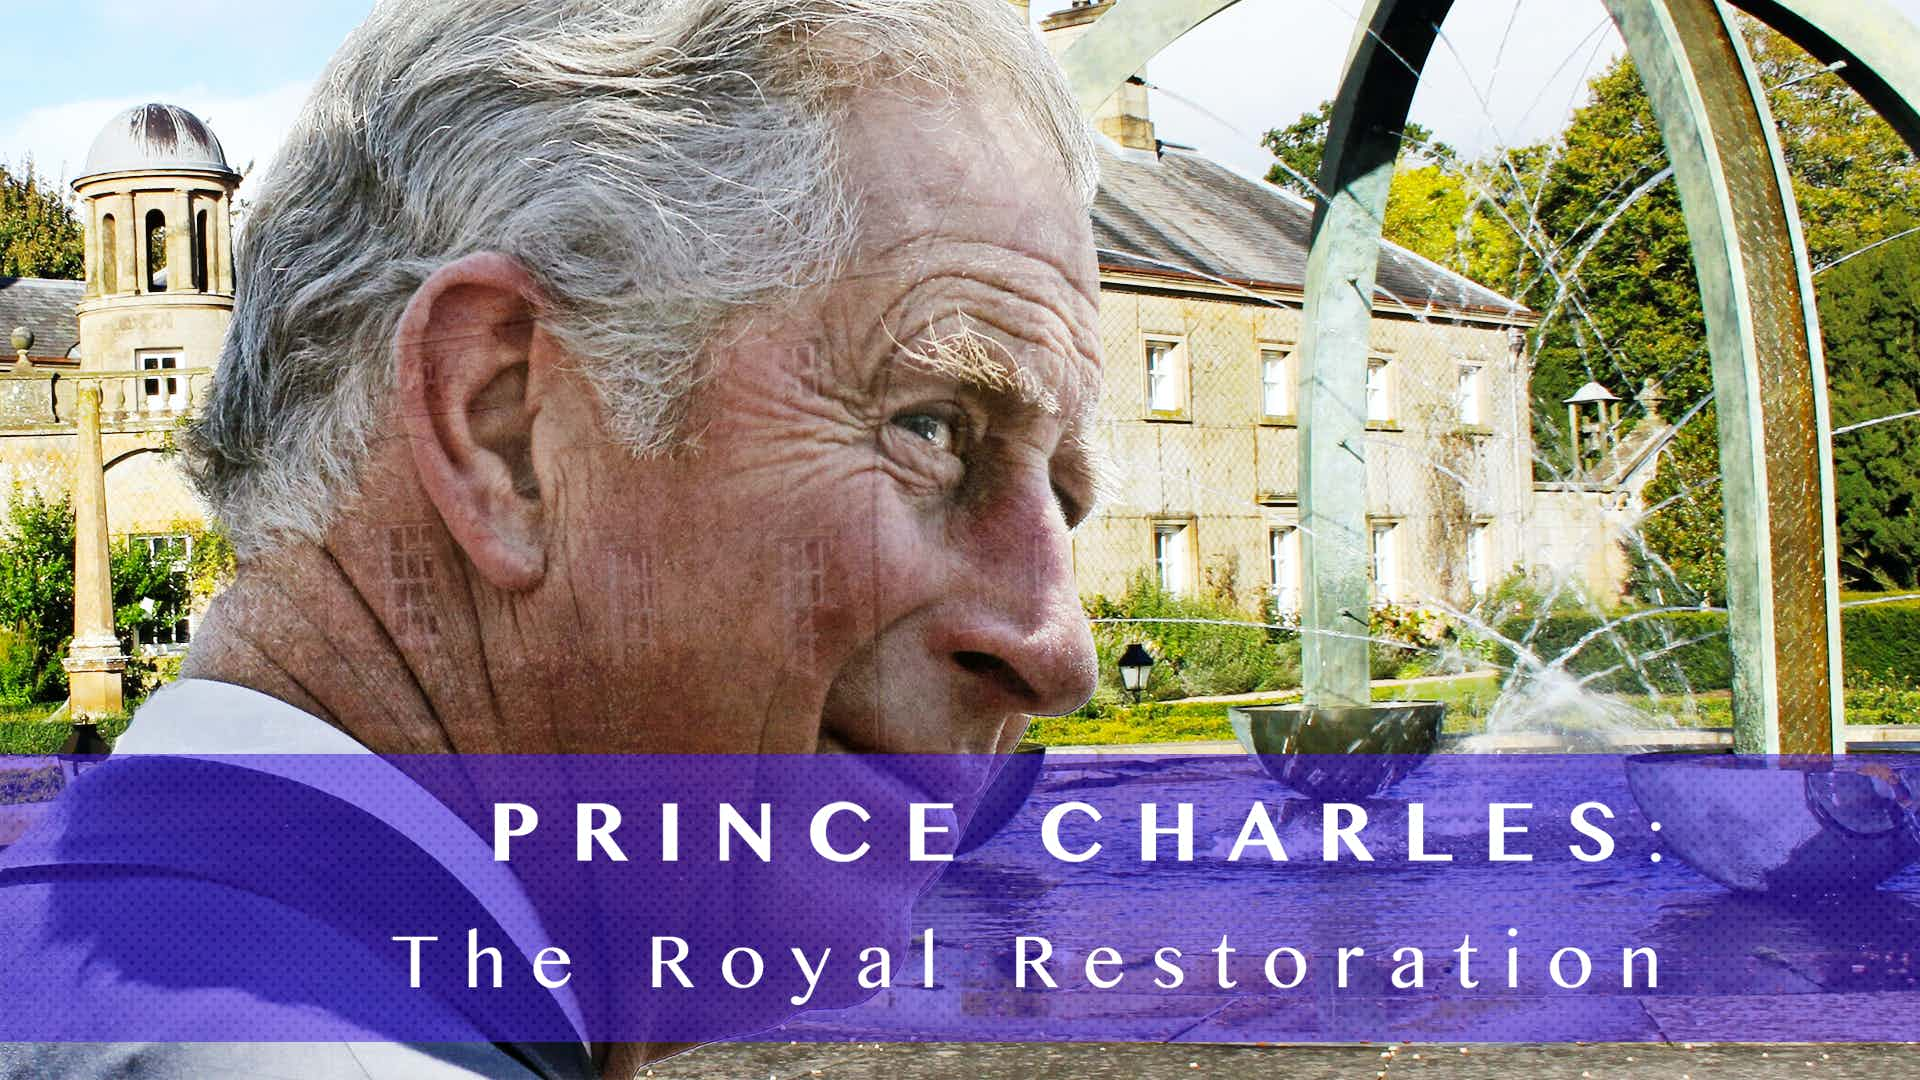 Prince Charles: The Royal Restoration